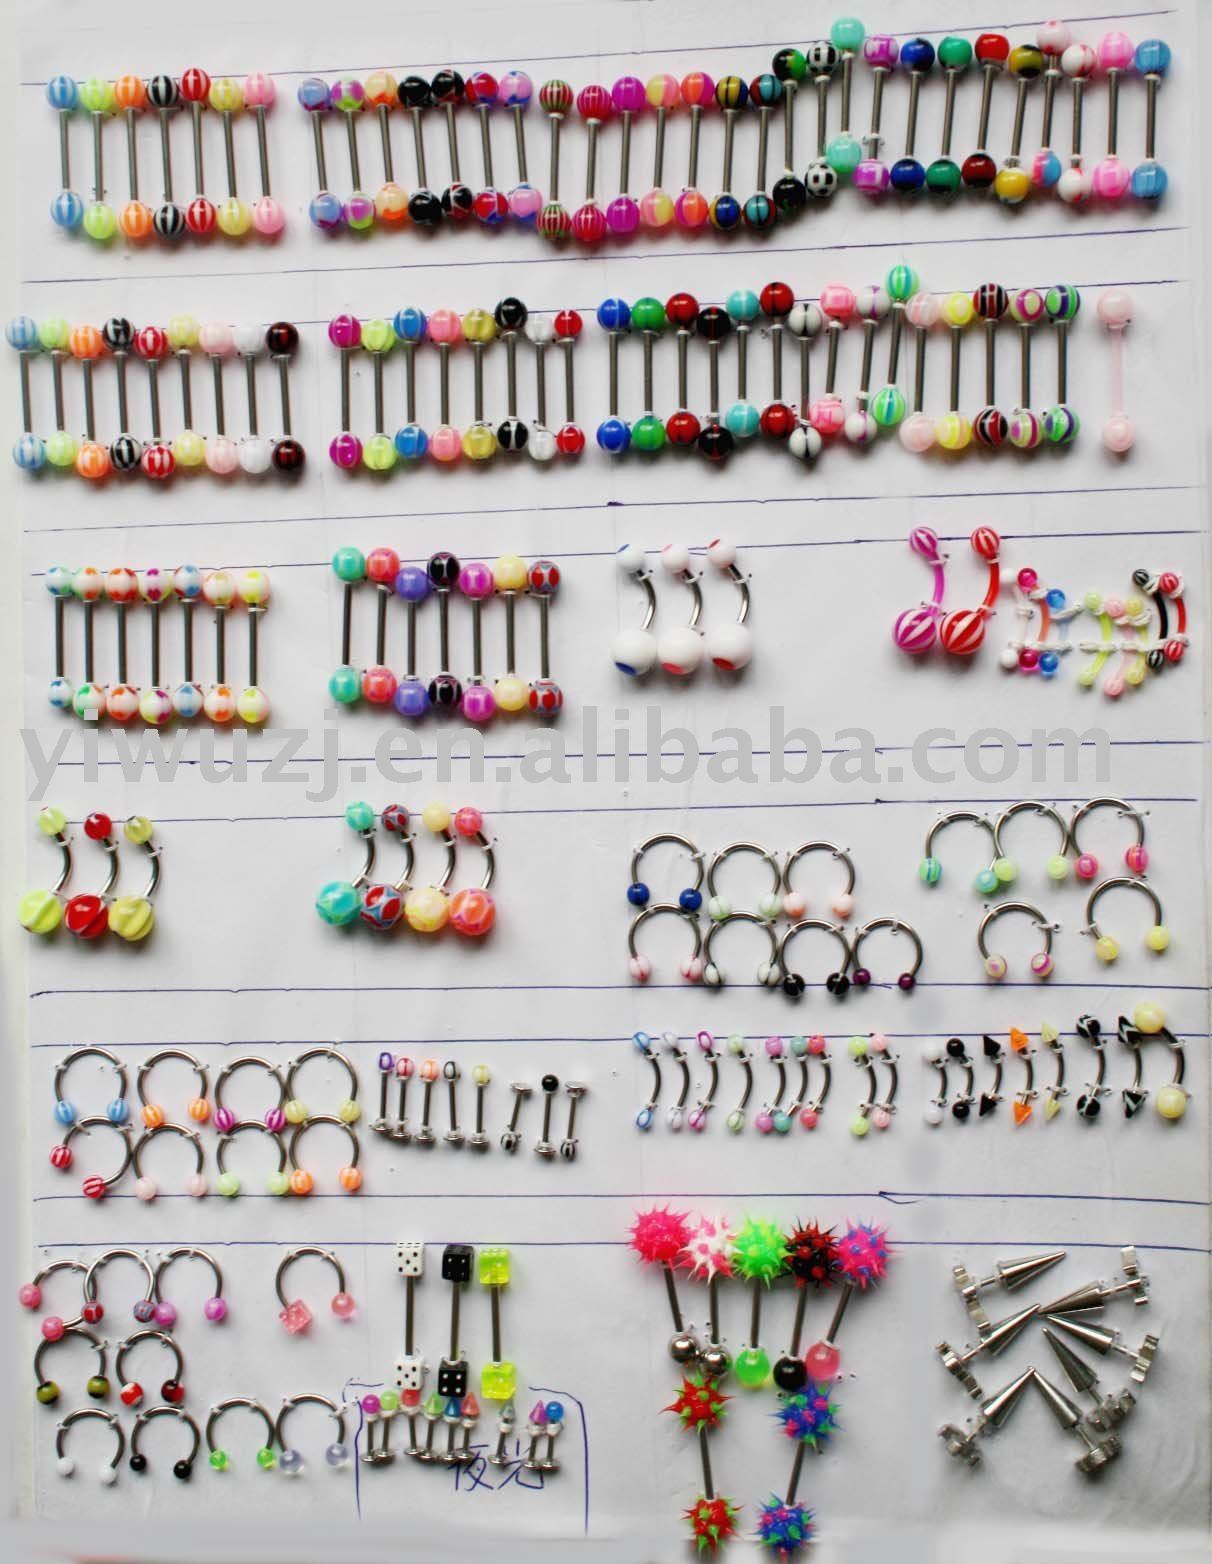 many kind of top body piercing jewelry